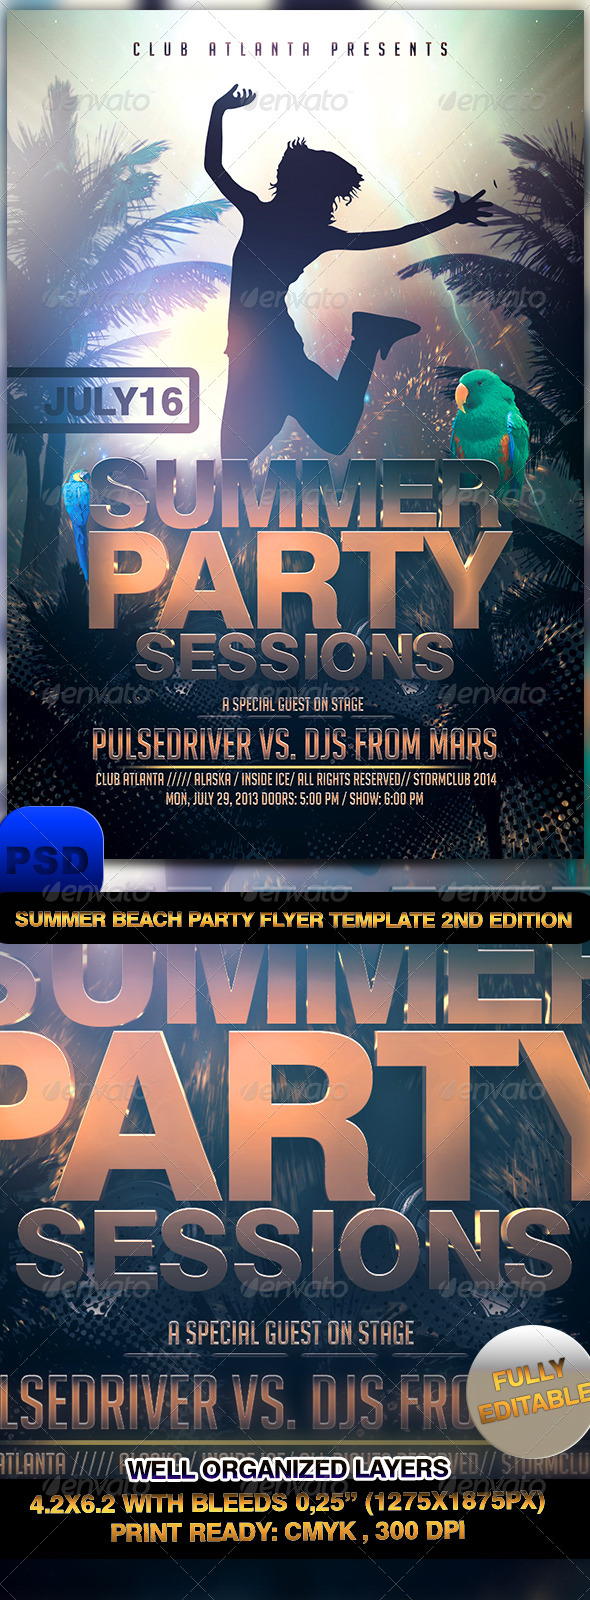 Summer Beach Party Flyer Template 2nd Edtition - Events Flyers